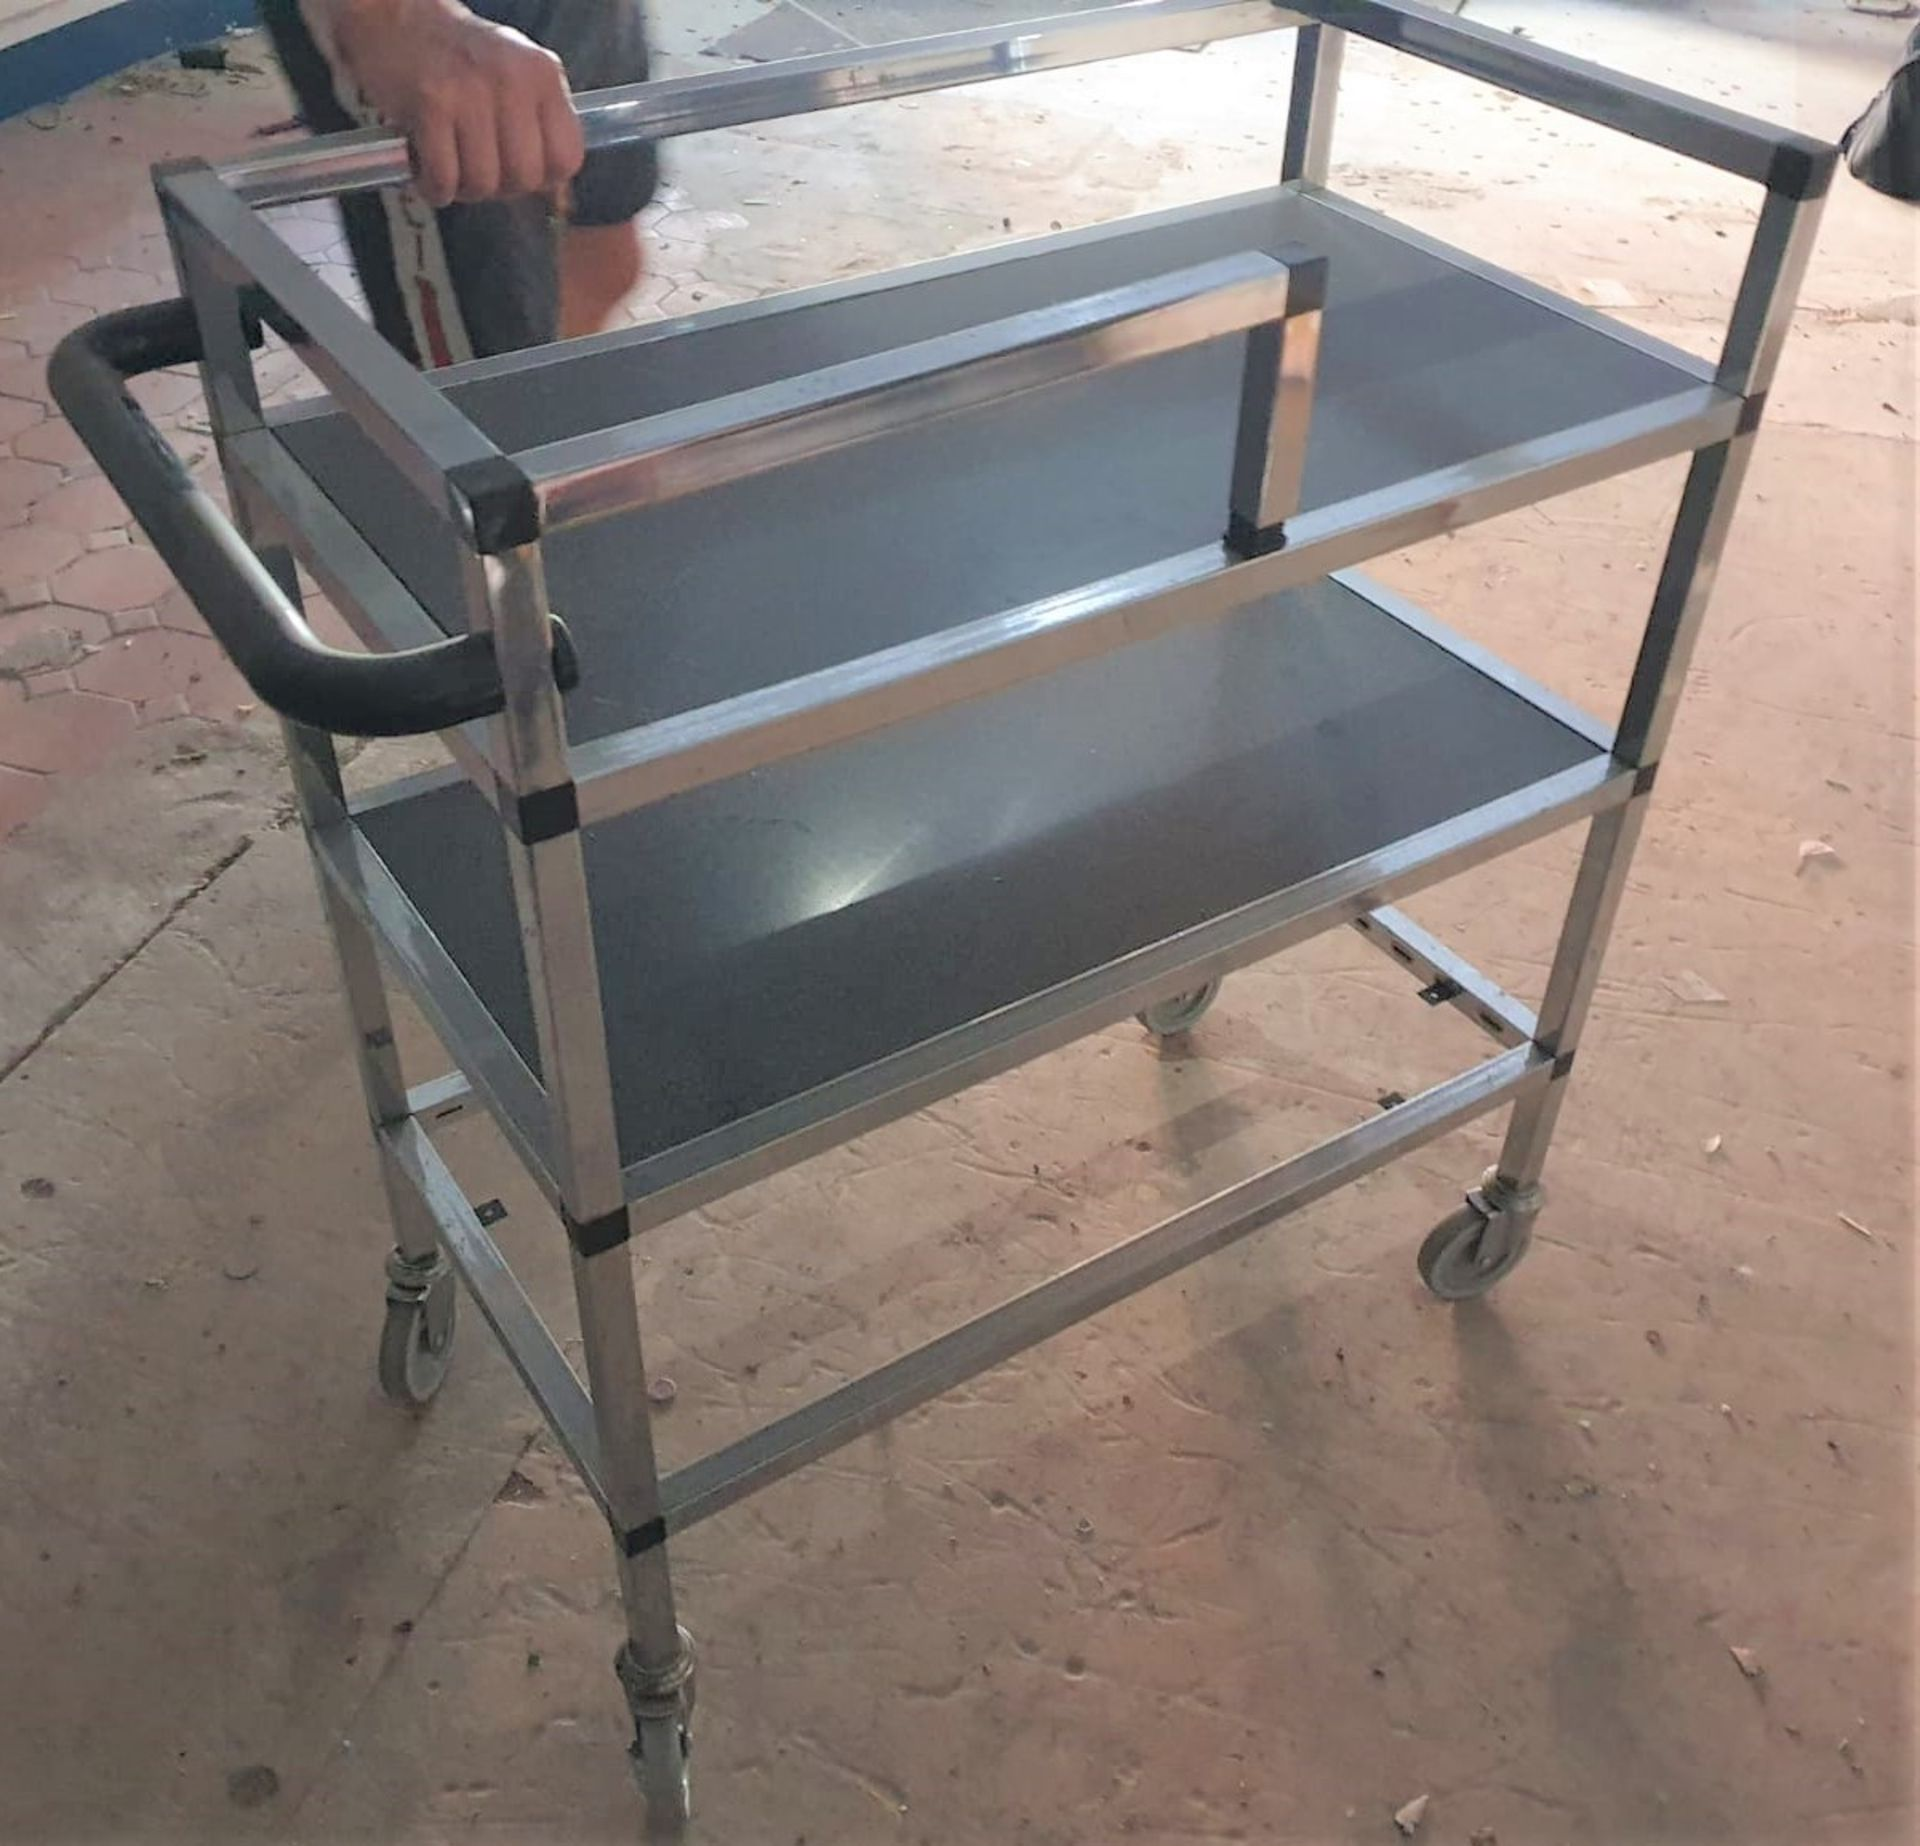 Lot 7551 - 1 x Mobile Trolley With Pull/Push Handle and Castors - Chrome Finish With Black Shelves - CL515 -